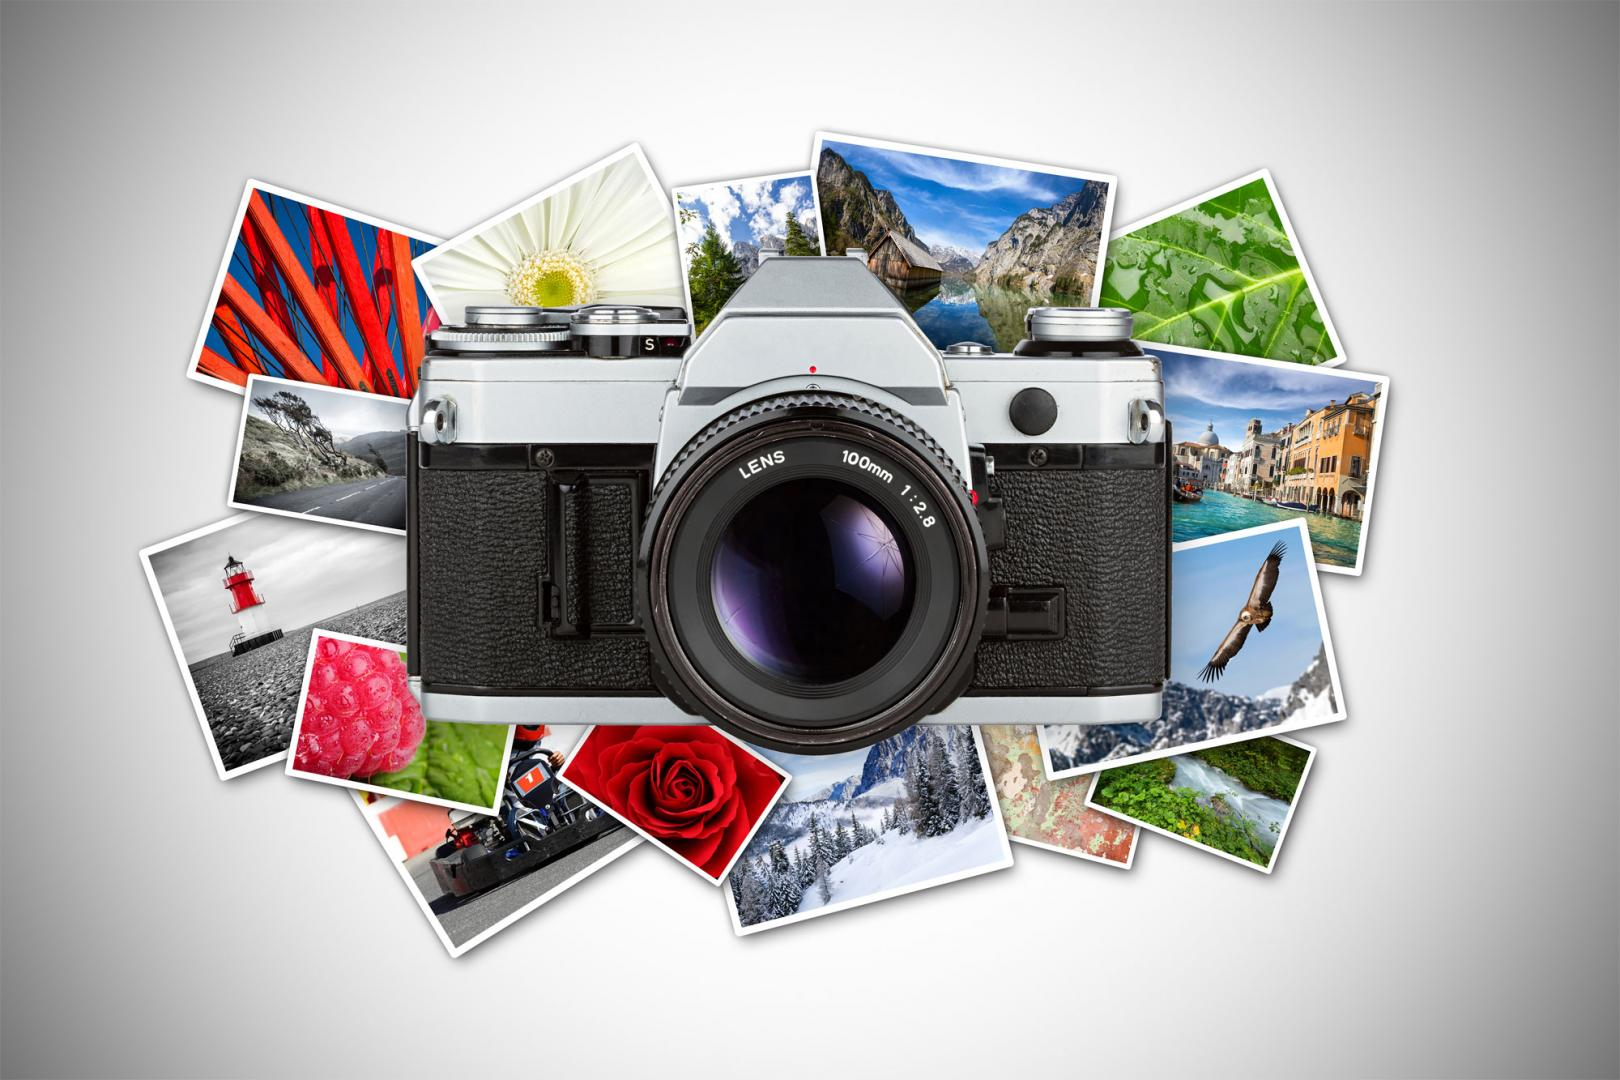 Photographe site de rencontre